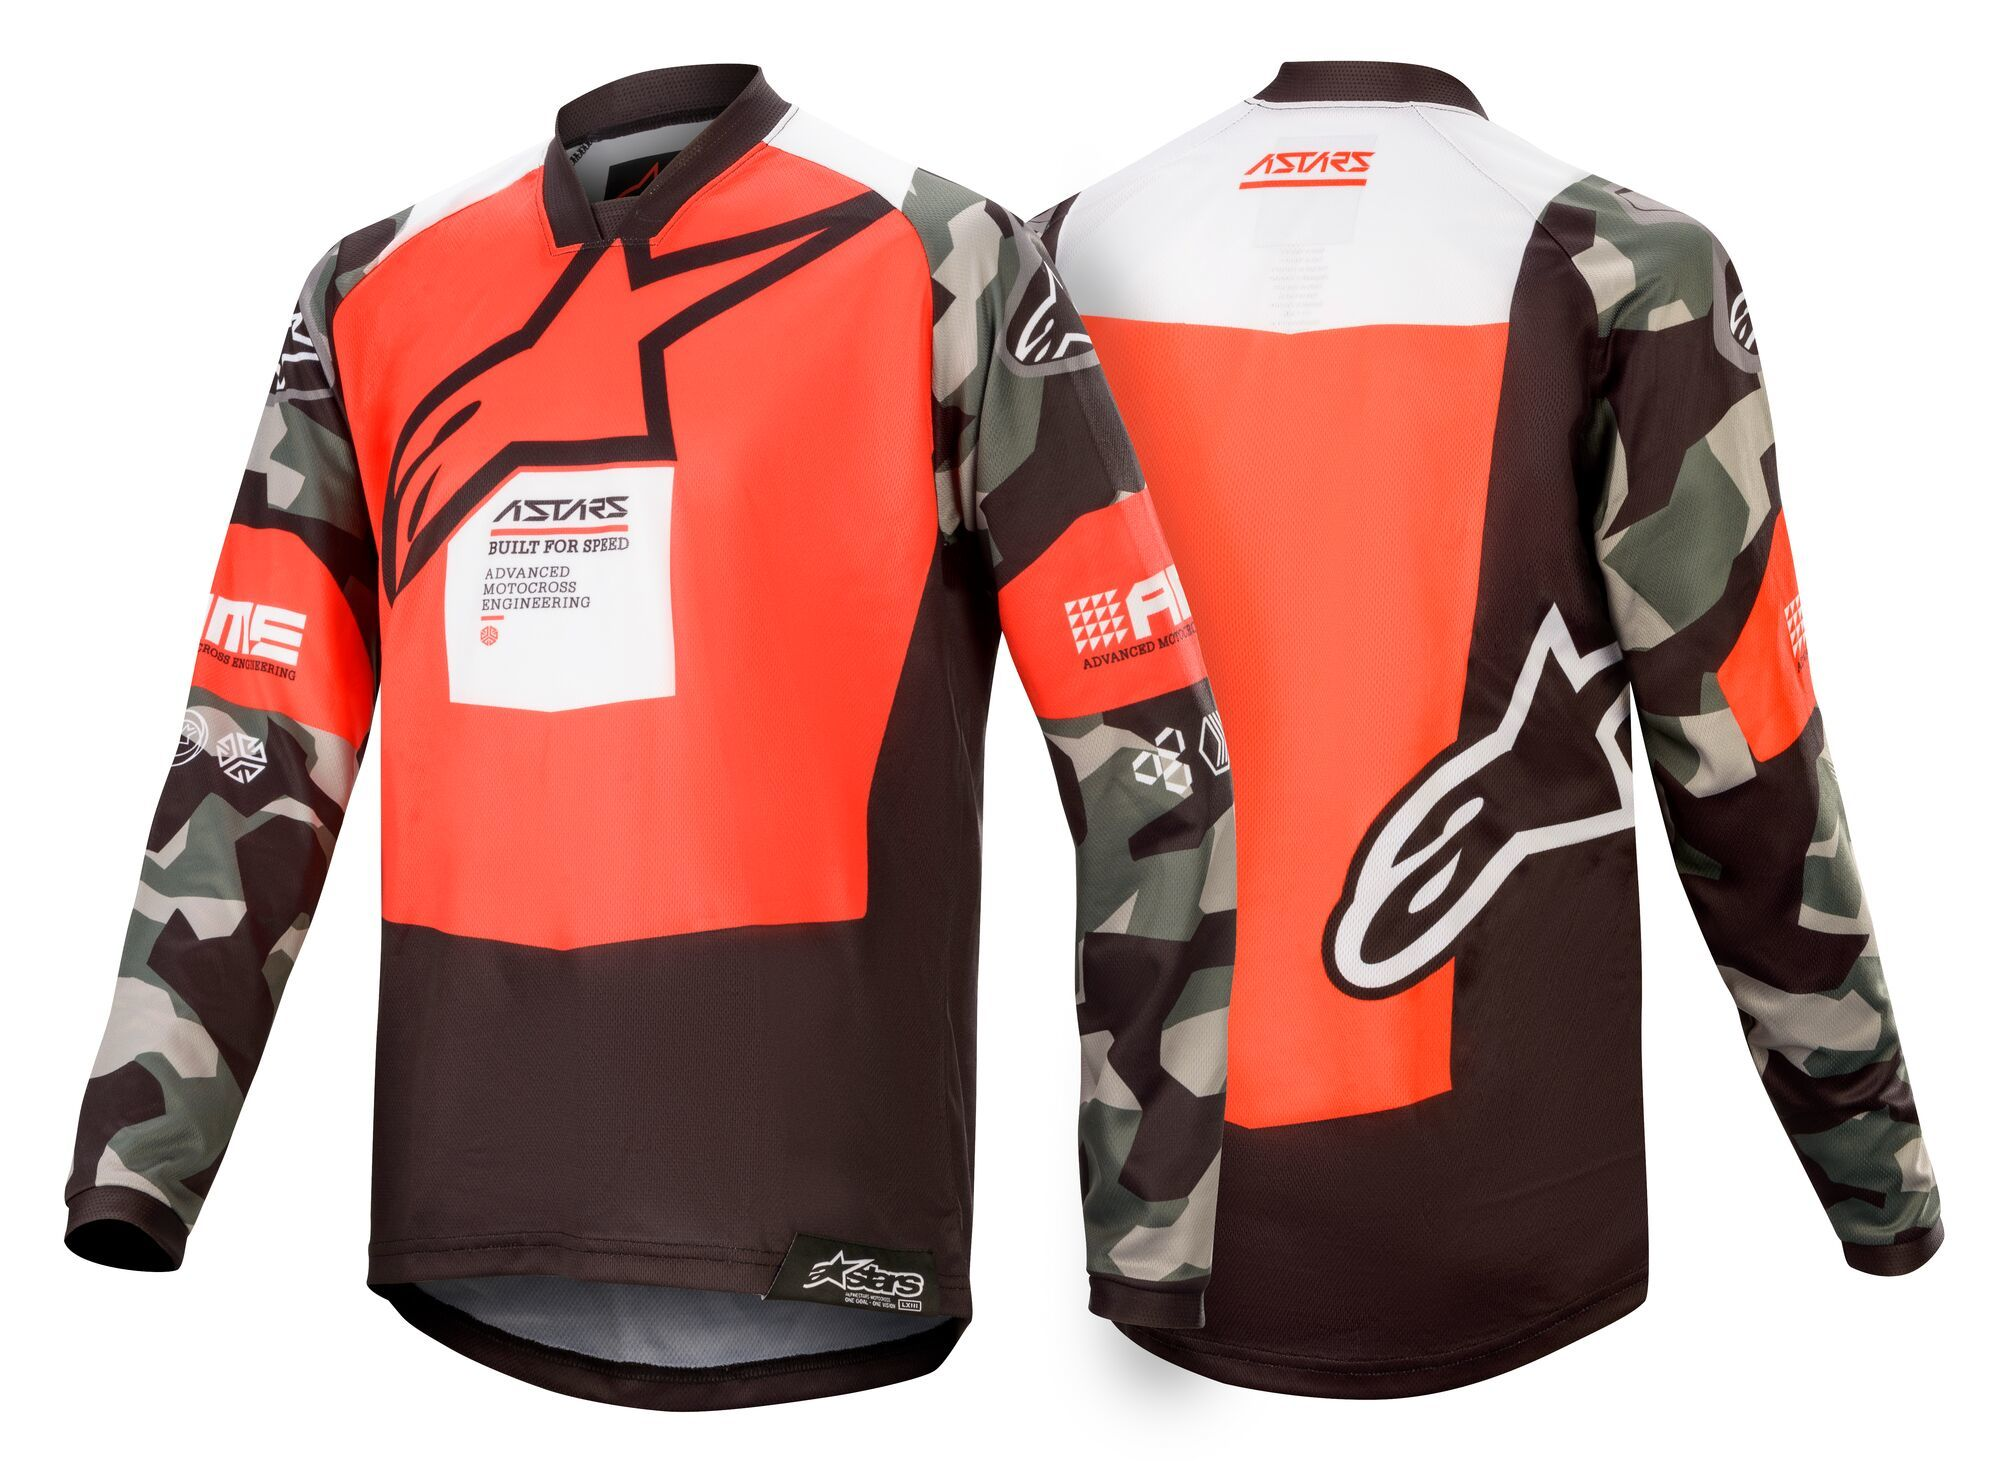 Large-3771920-1367-r1_limited-edition-magneto-19-youth-racer-jersey.jpg#asset:23241